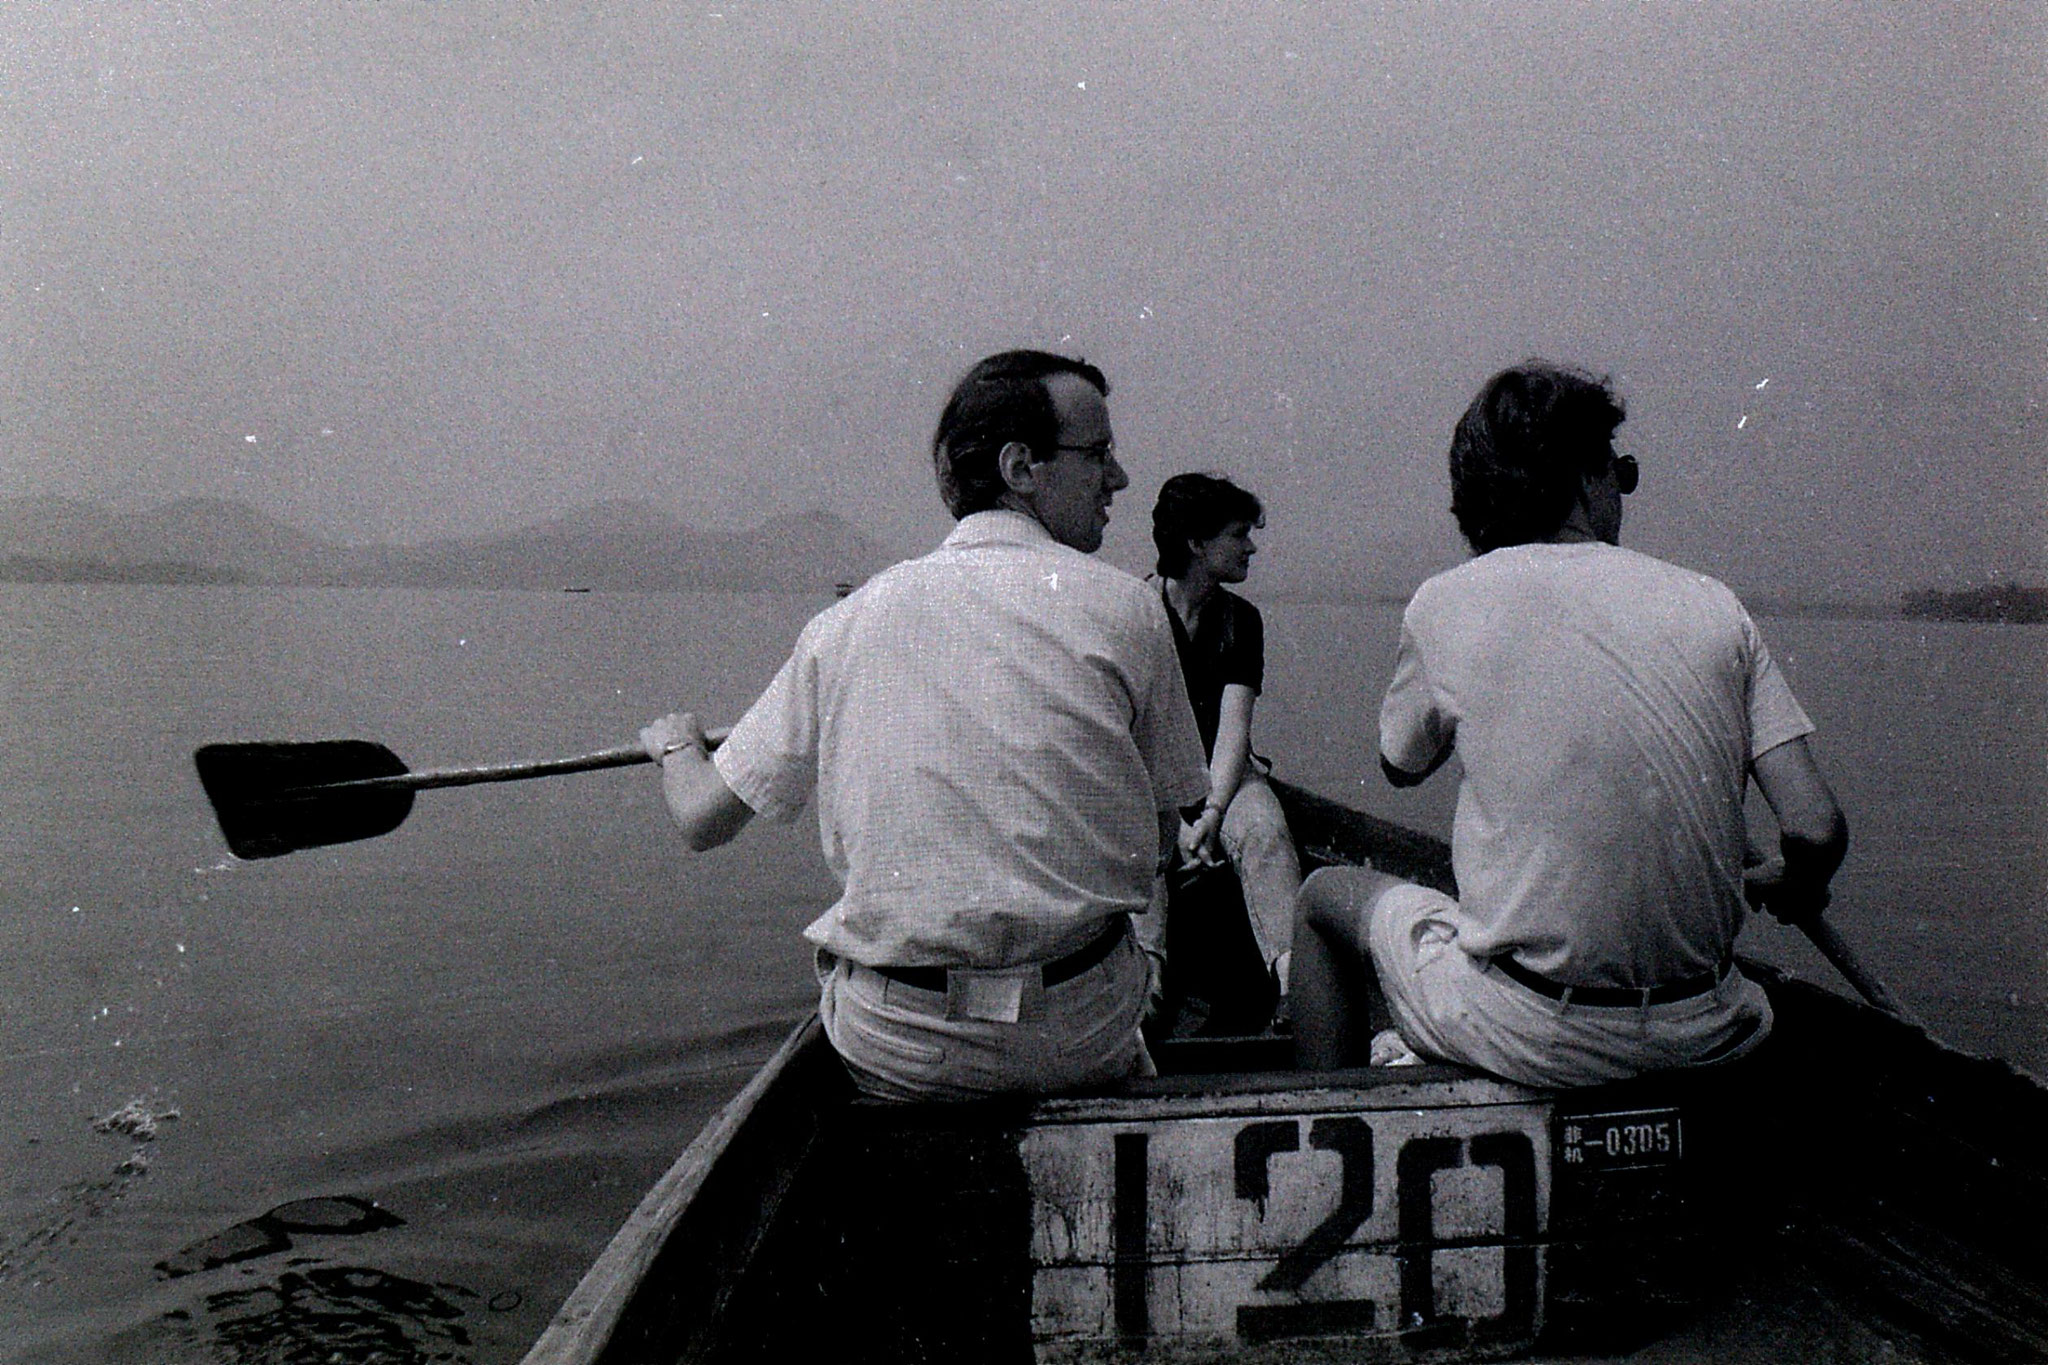 19/6/1989: 30: group visit to West Lake